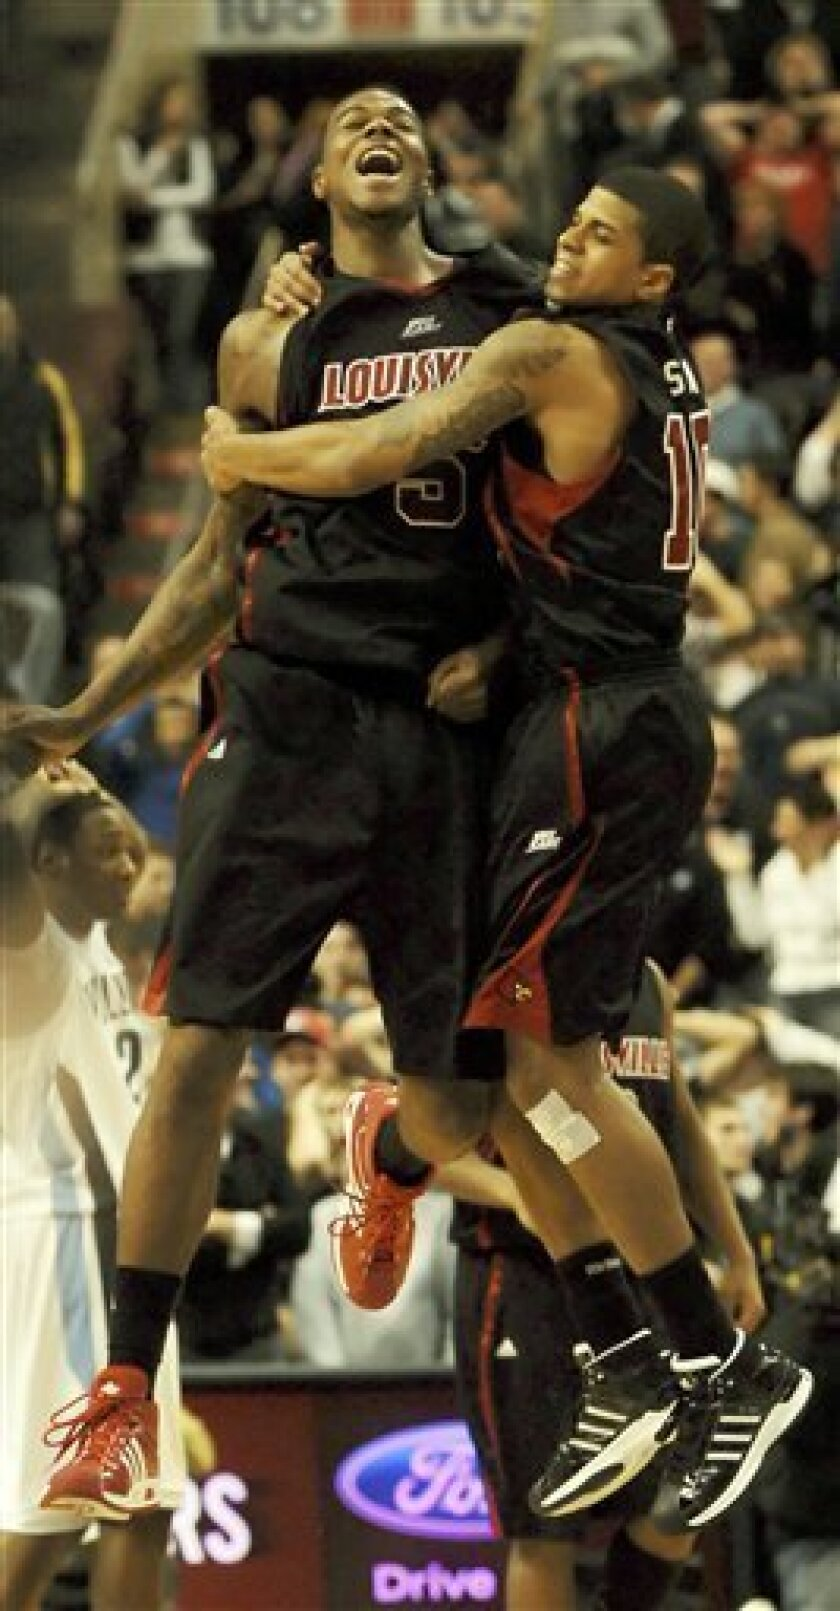 Louisville's  Earl Clark, left and Edgar Sosa, right, celebrate their 61-60 victory over Villanova at the conclusion of an NCAA college basketball game on Saturday, Jan. 10, 2009 in Philadelphia. (AP Photo/Bradley C Bower)